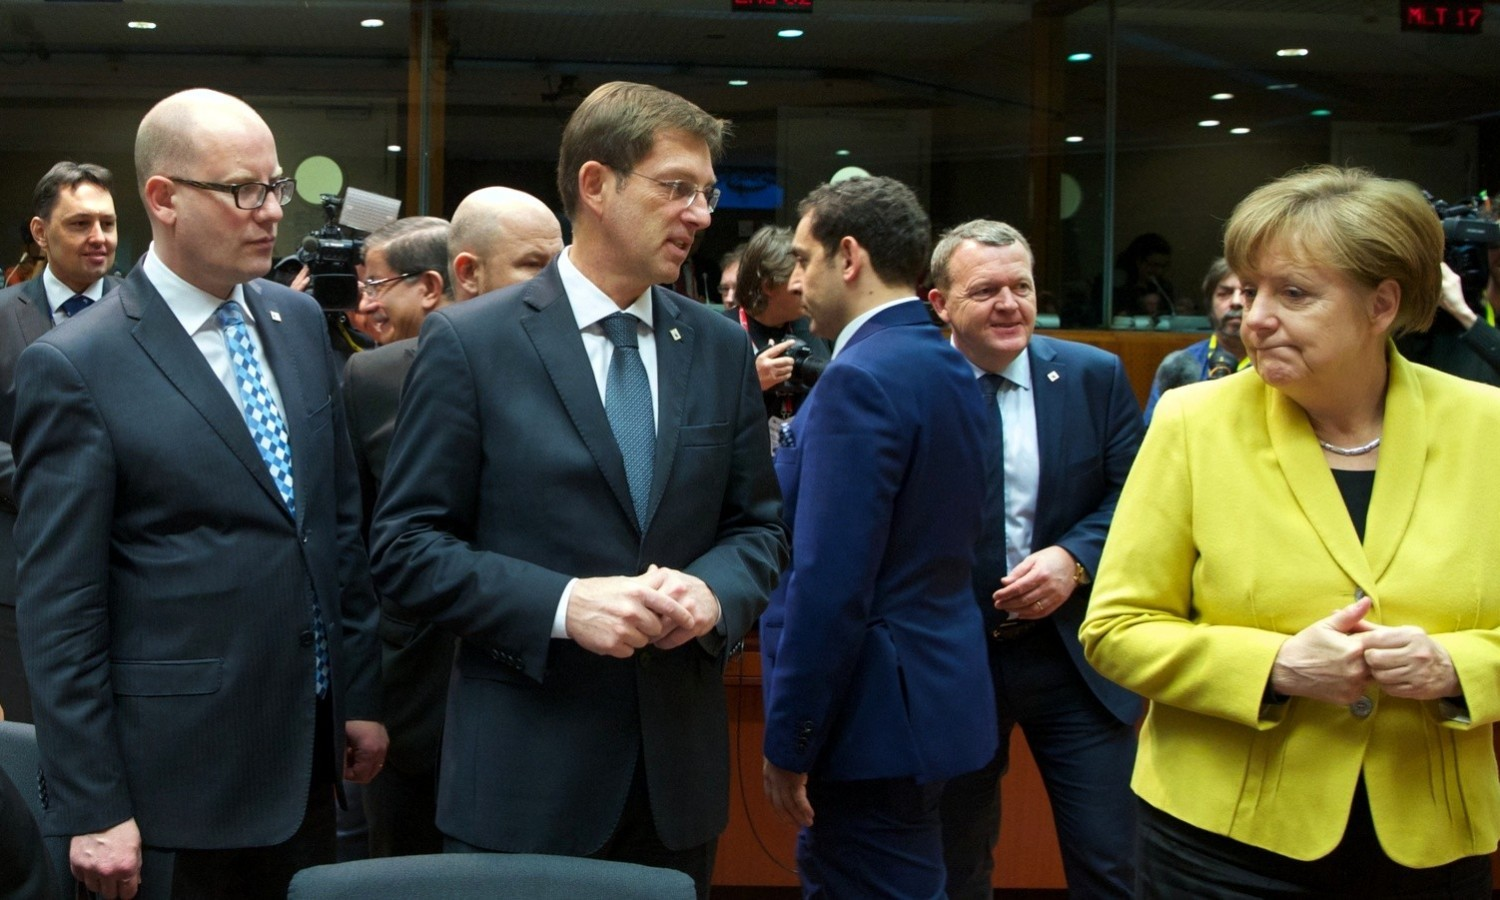 Bohuslav Sobotka, Miro Cera and Angela Merkel at European Council in Brussels on March 18, 2016 / tvnewsroom.consilium.europa.eu